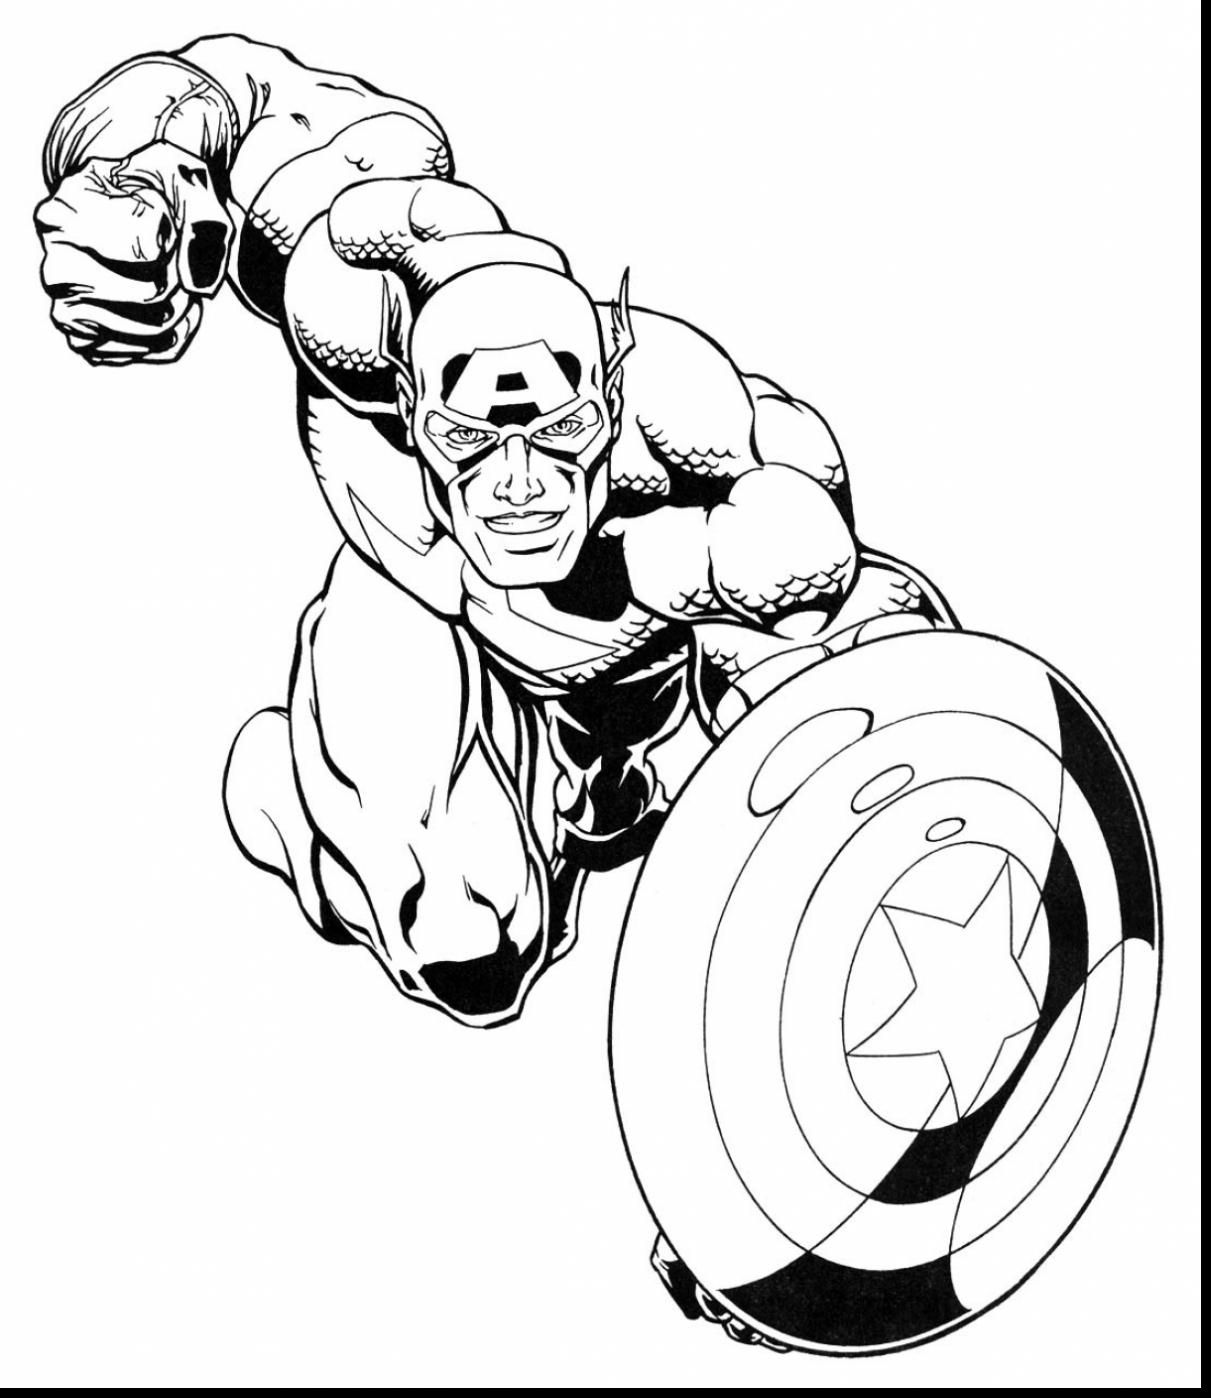 incredible marvel super heroes coloring pages with super hero squad ...